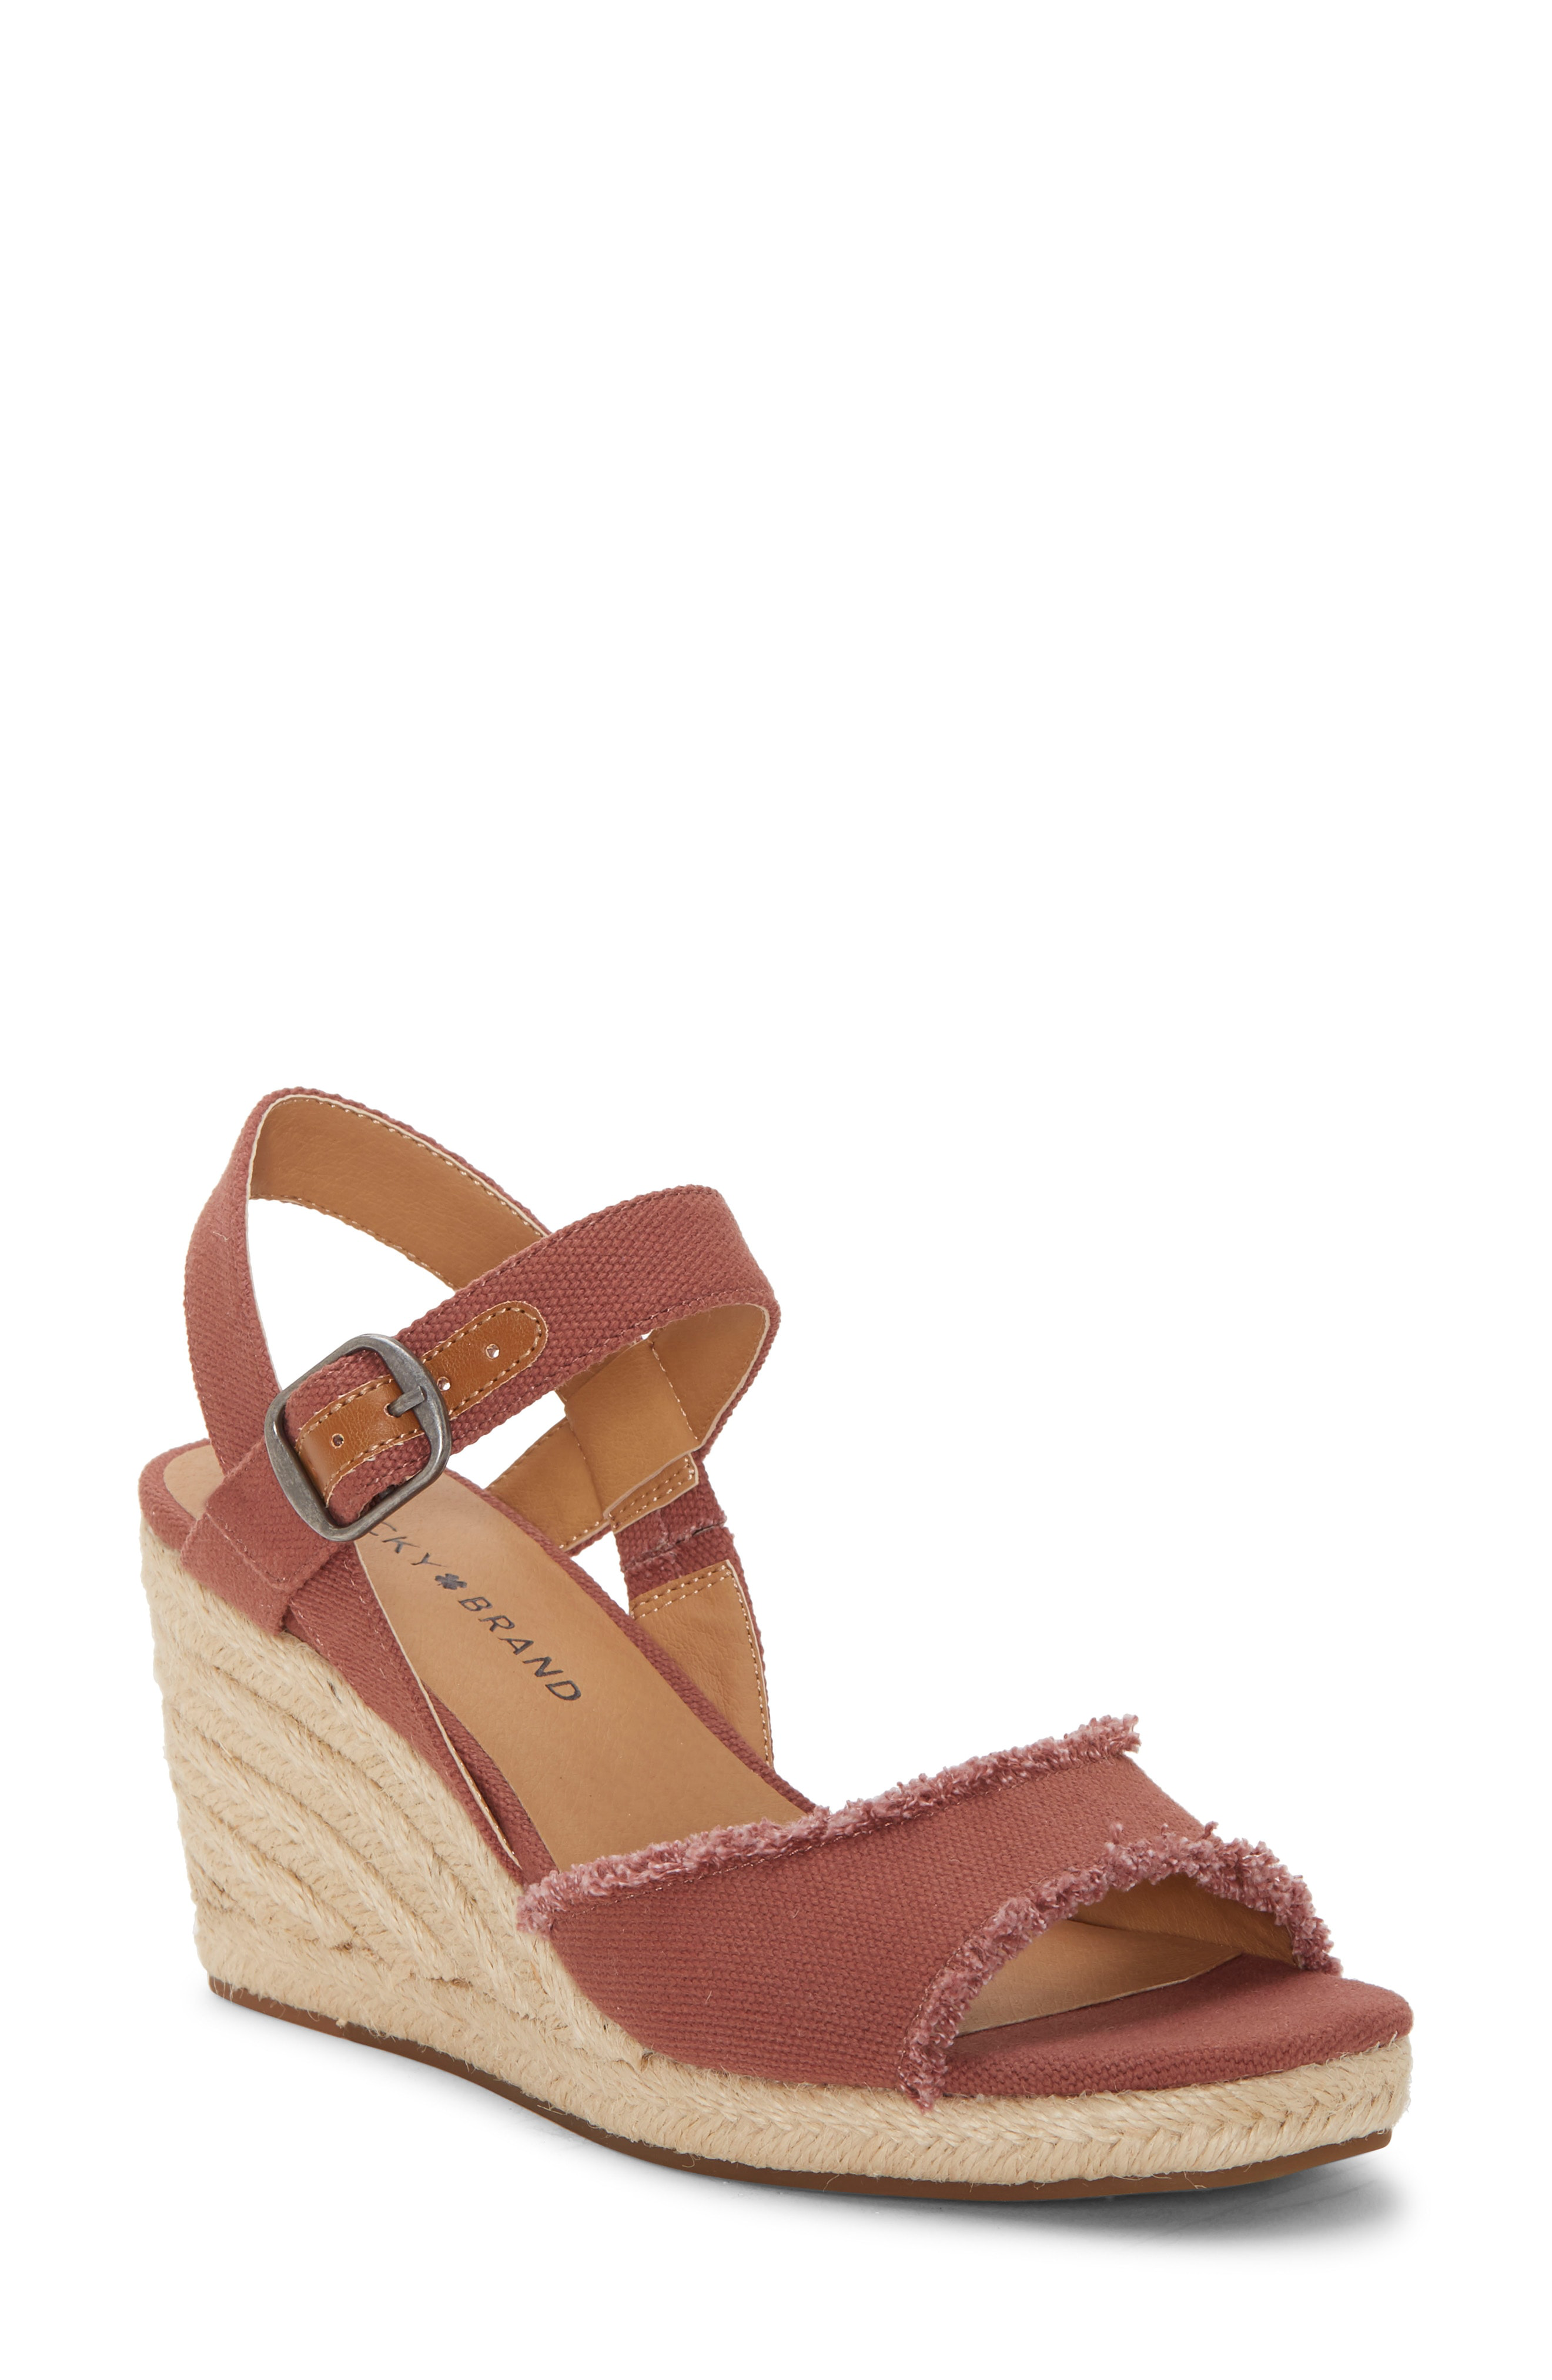 8b7f65834cd Lucky Brand Mindra Espadrille Wedge Sandal In Mauve Fabric